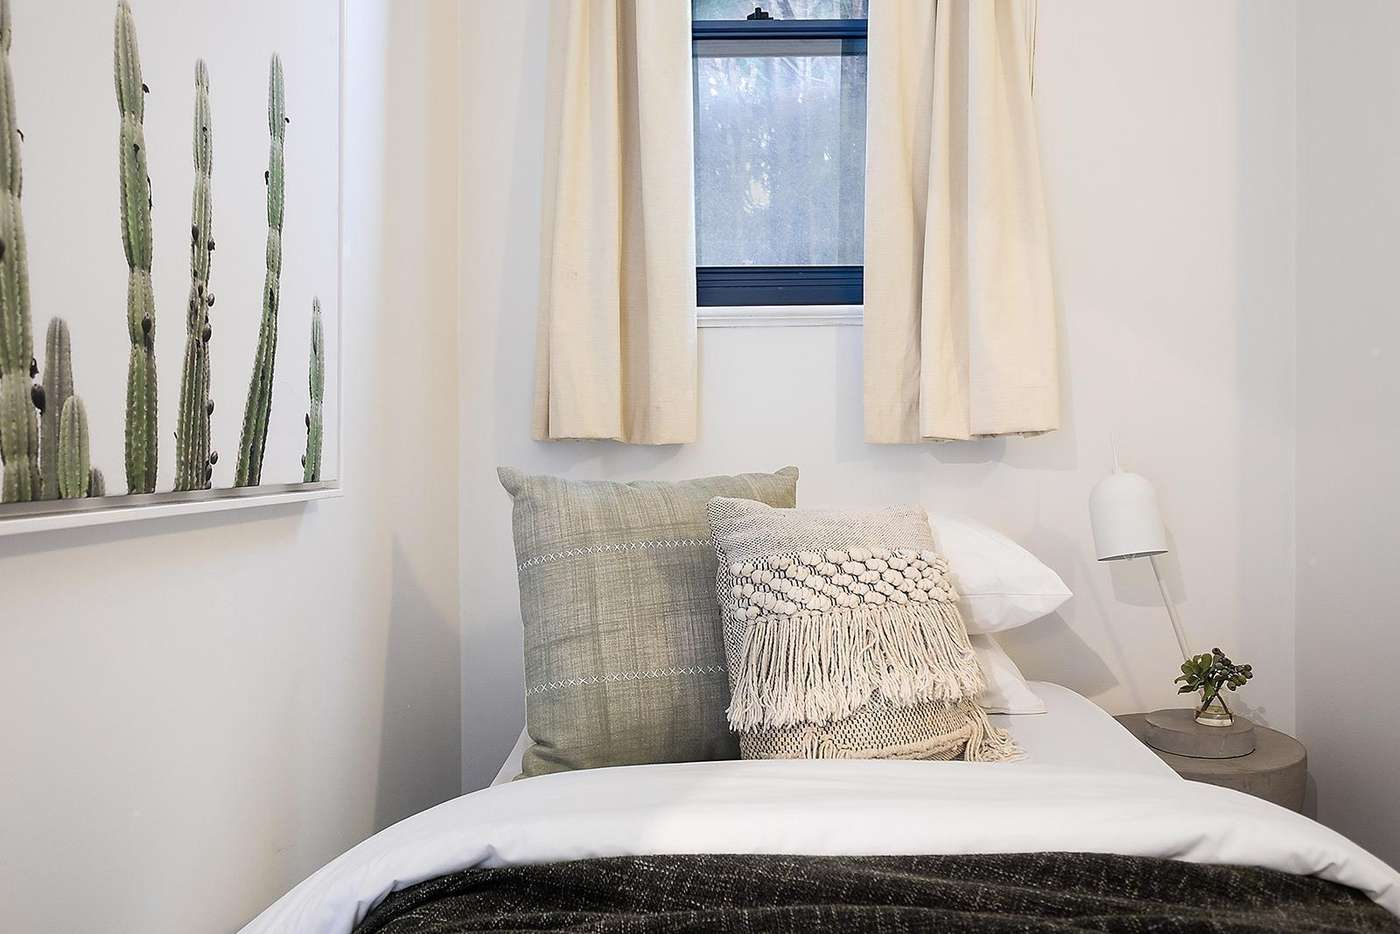 Sixth view of Homely apartment listing, 301/1 Phillip Street, Petersham NSW 2049